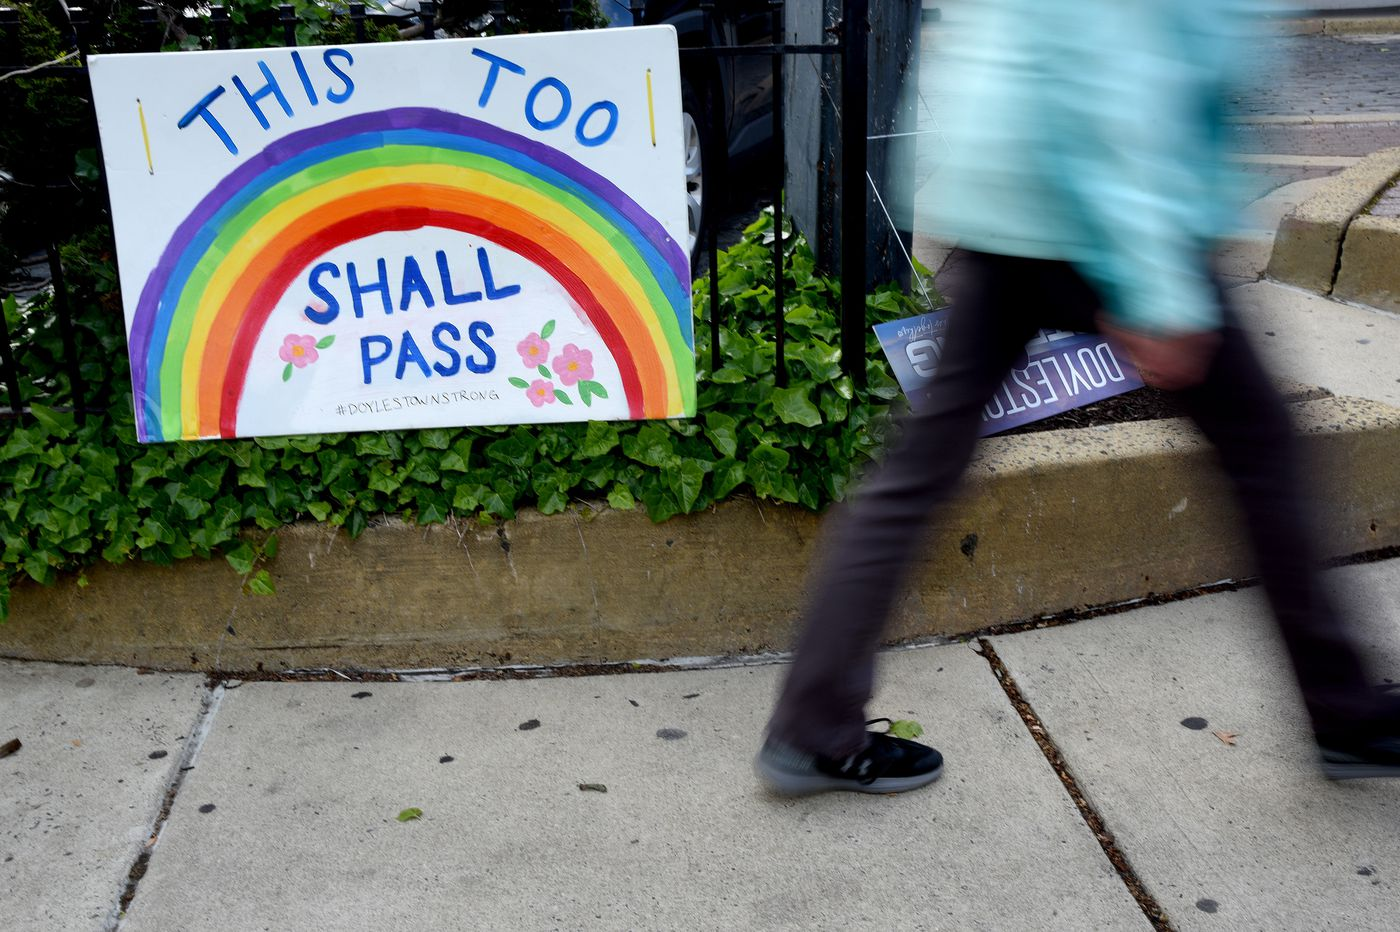 An additional 2.4 million Americans file for unemployment, but claims drop in Pa. as some counties reopen